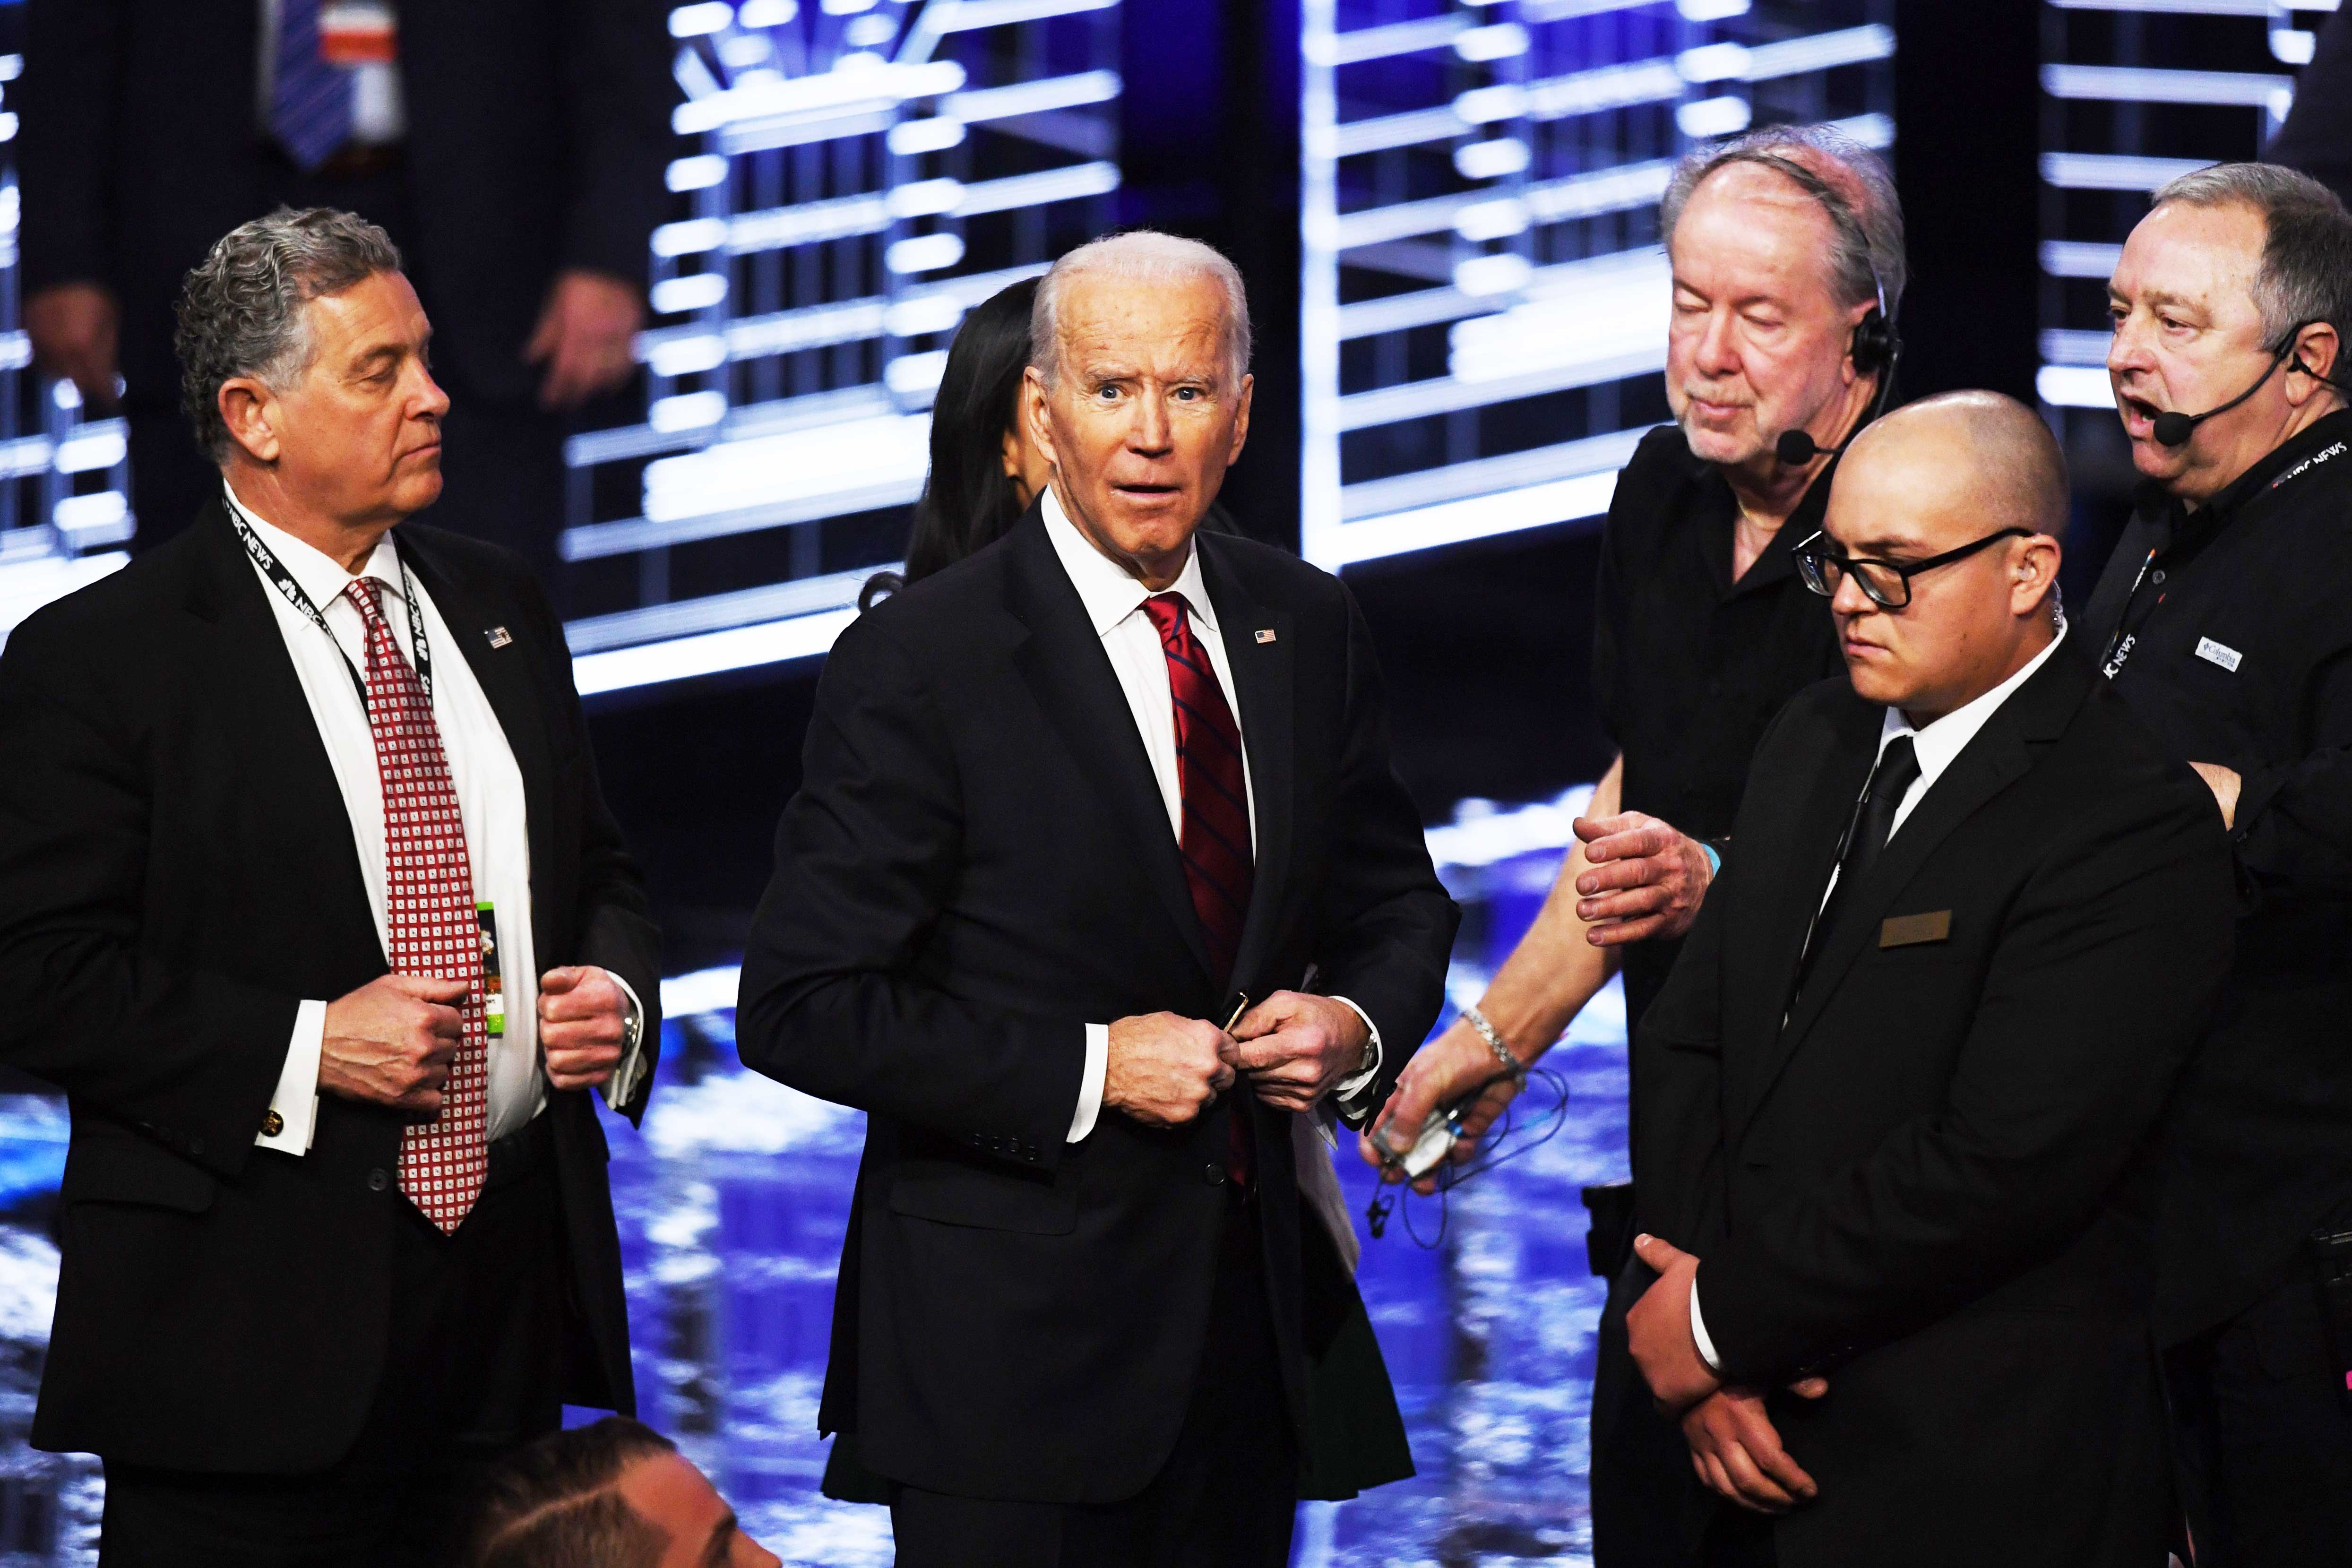 Protesters at the Nevada Democratic debate were immigrant rights activists